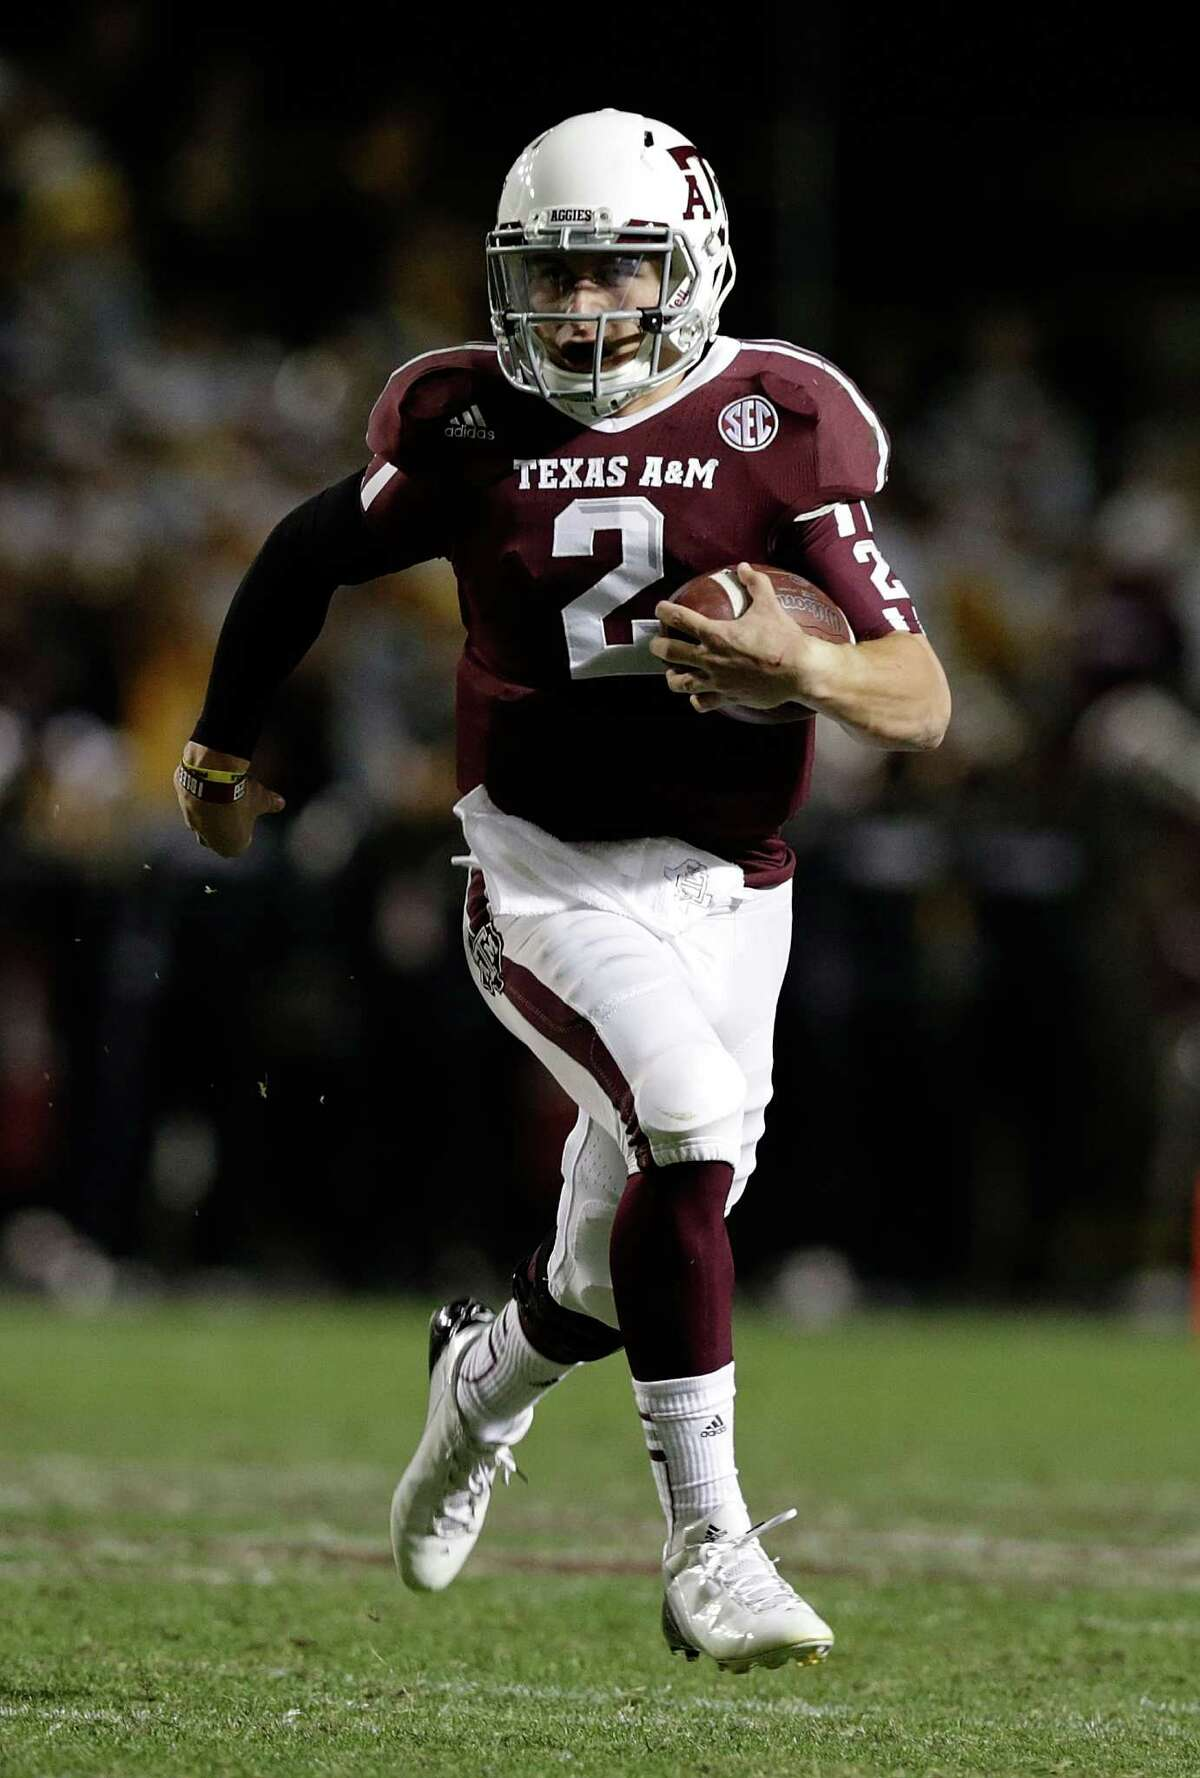 Texas A&M quarterback Johnny Manziel is a favorite to become the first freshman to win the Heisman Trophy. He joins only seven other freshmen in the 78-year history of the award to be in the top 10. Express-News staff writer Burt Henry takes a look at those seven: